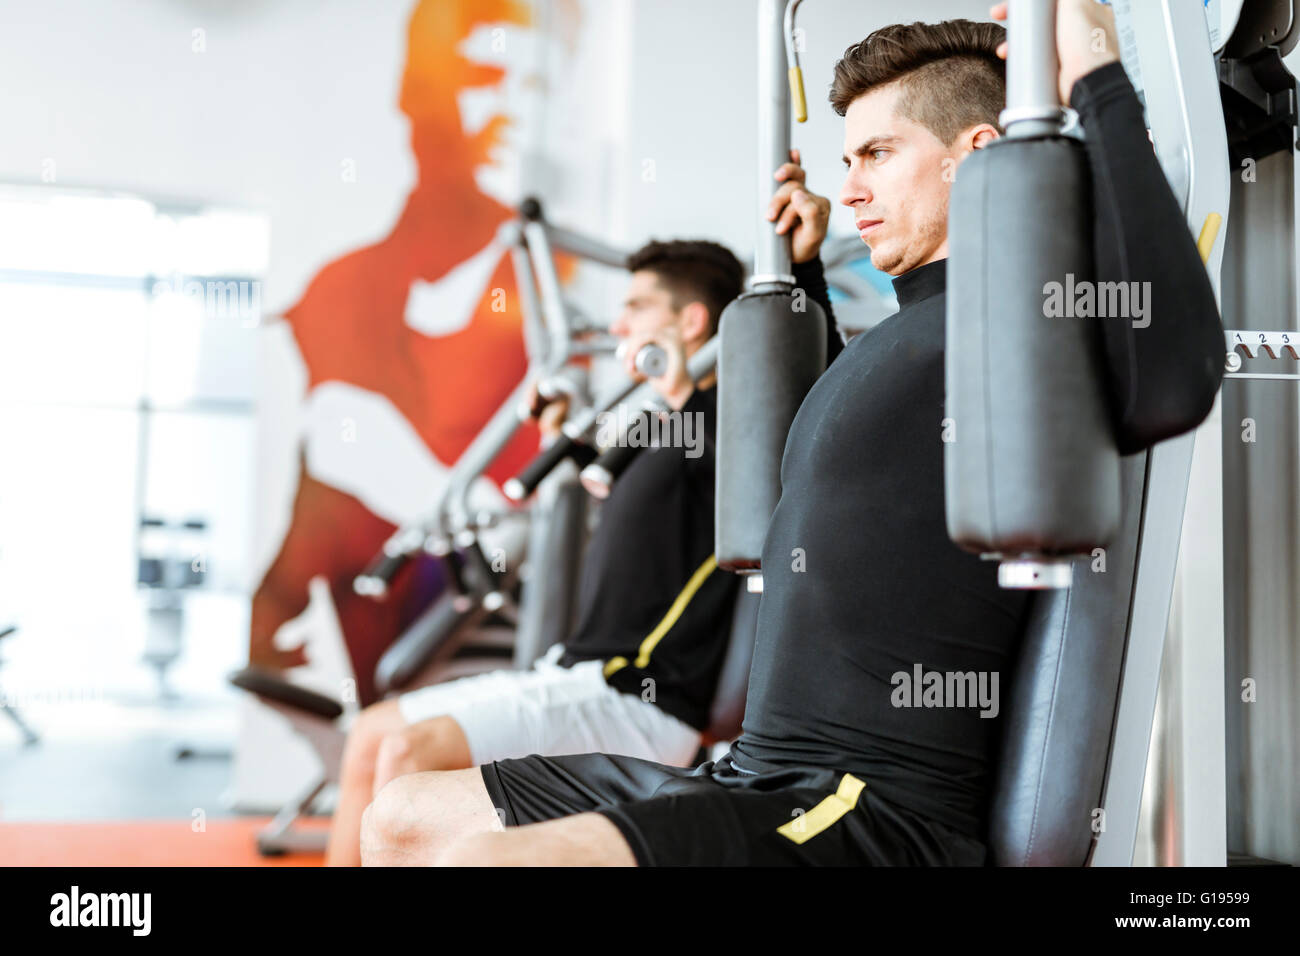 Two handsome men working out in a beautiful fitness center - Stock Image